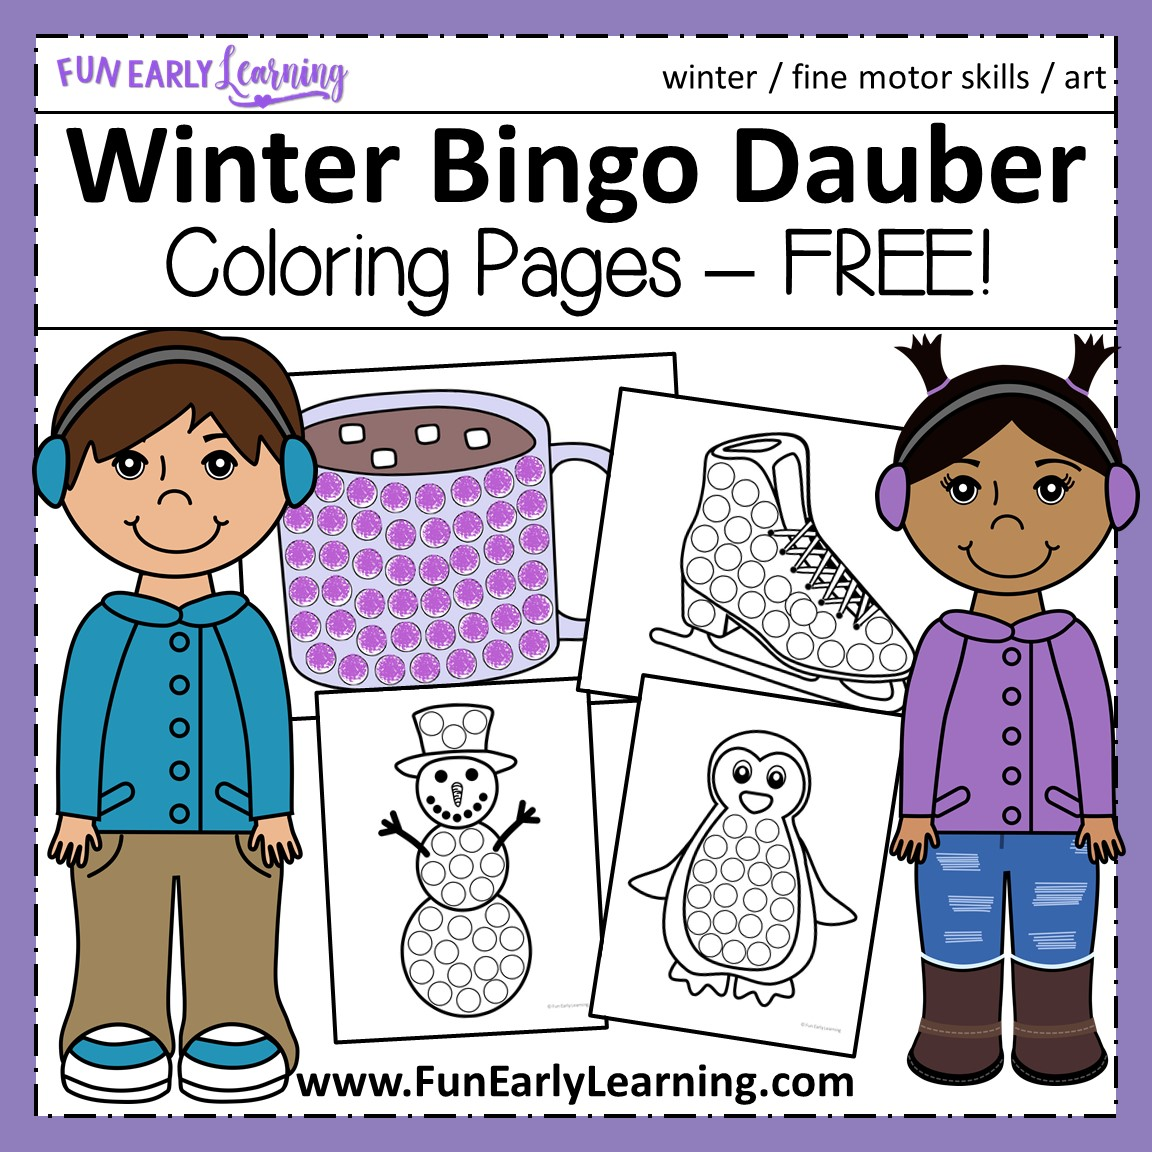 Winter Bingo Dauber Coloring Pages Free Printable